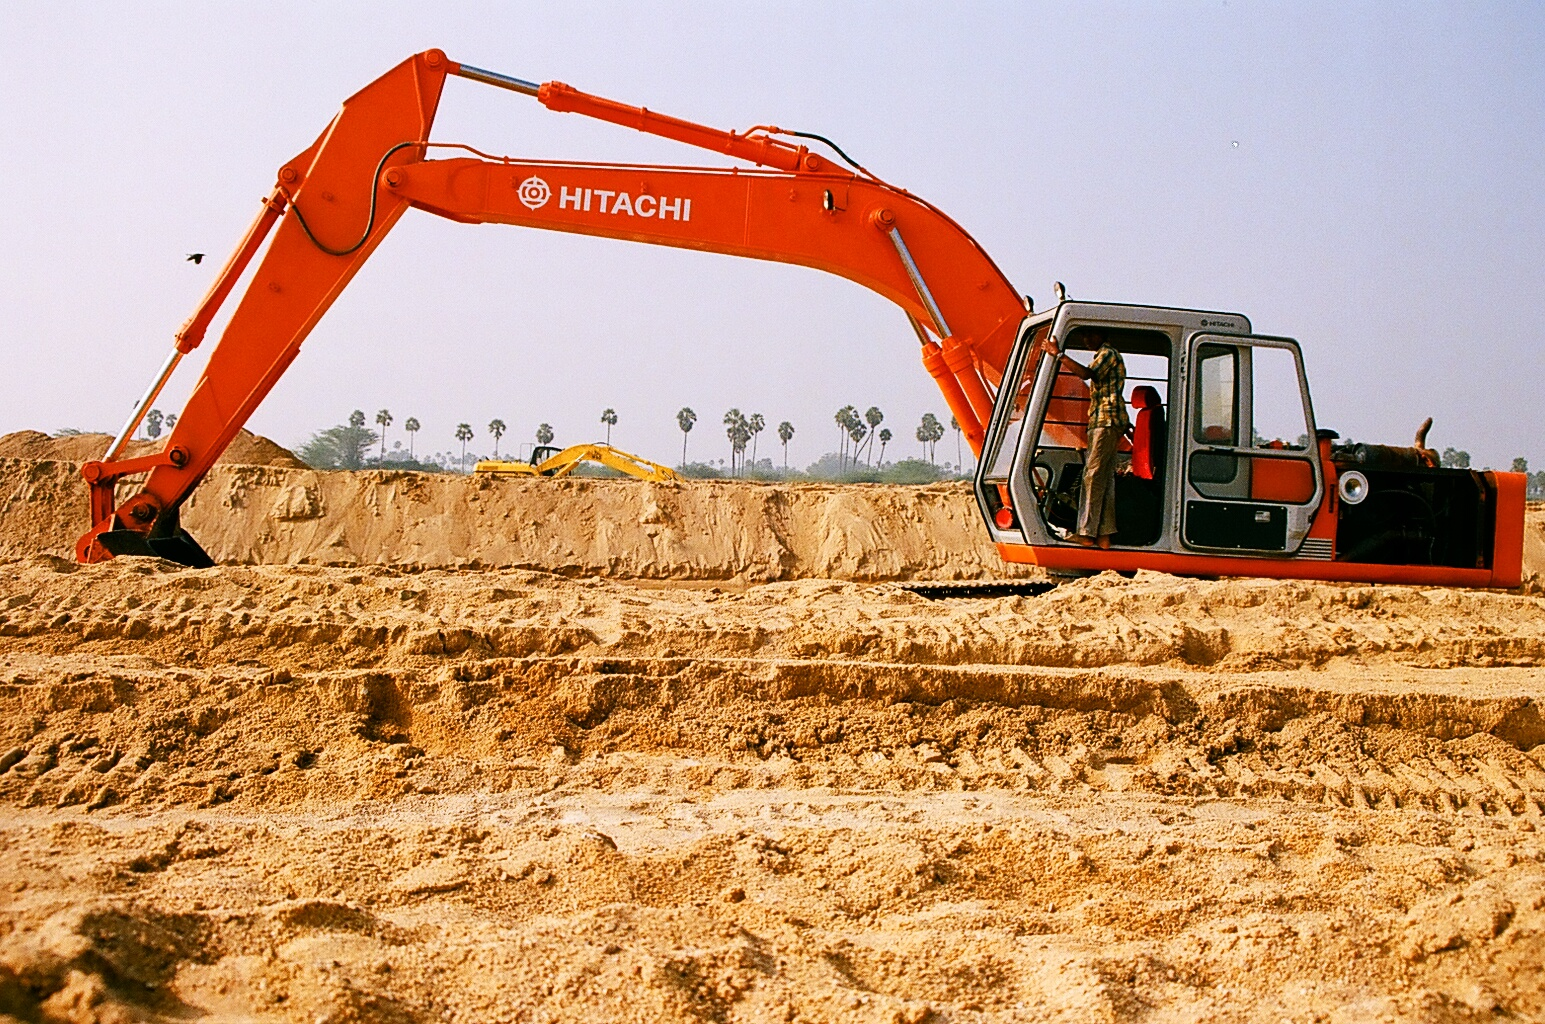 A view of the earth mover used to load sand. Kanchipuram, Tamil Nadu.